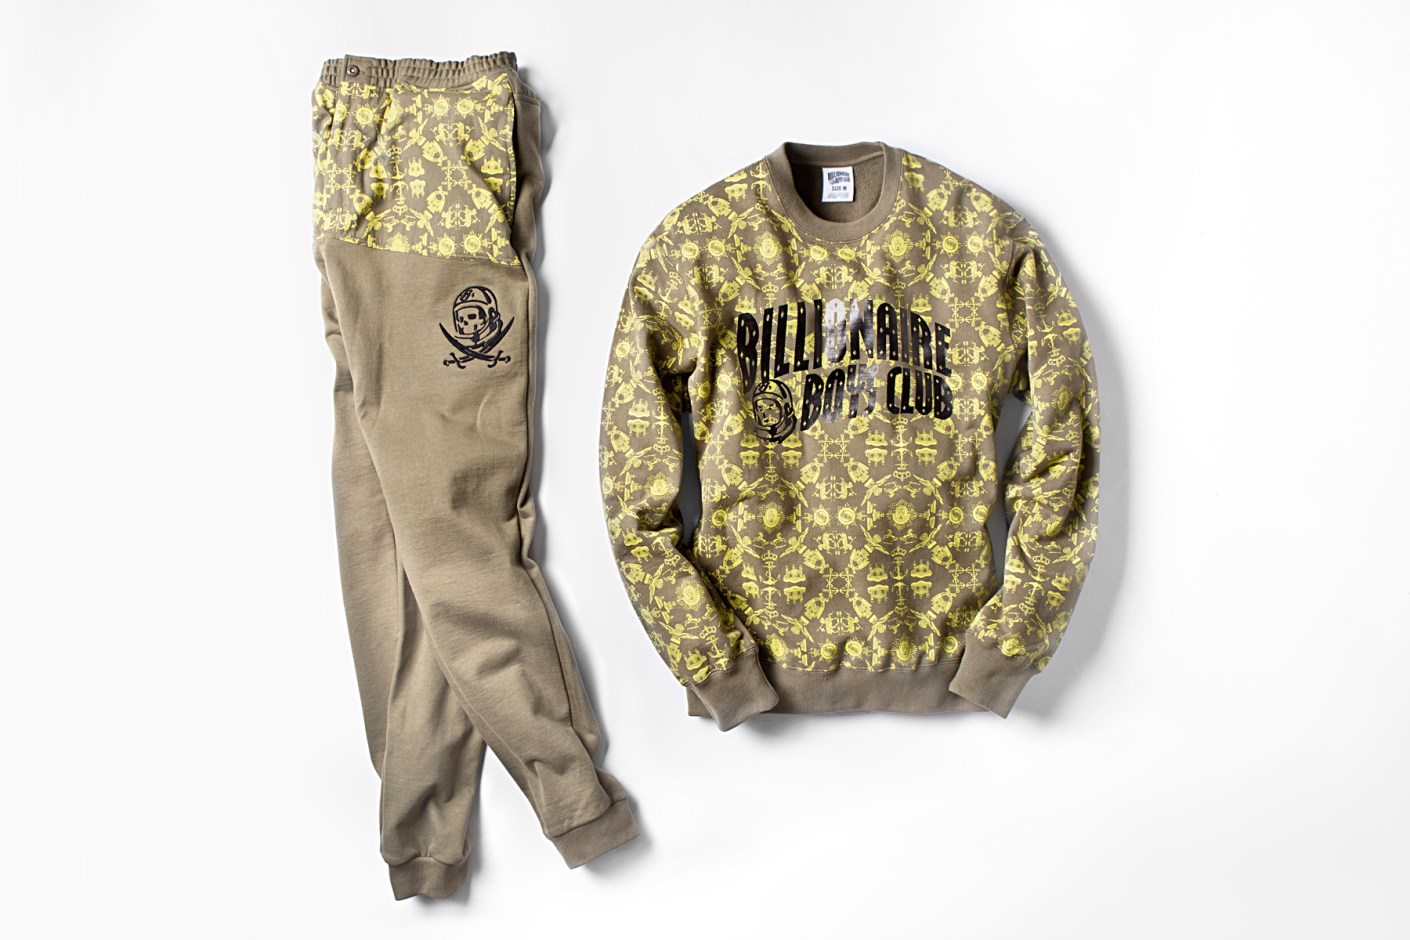 Image of Billionaire Boys Club 2014 Spring/Summer Collection